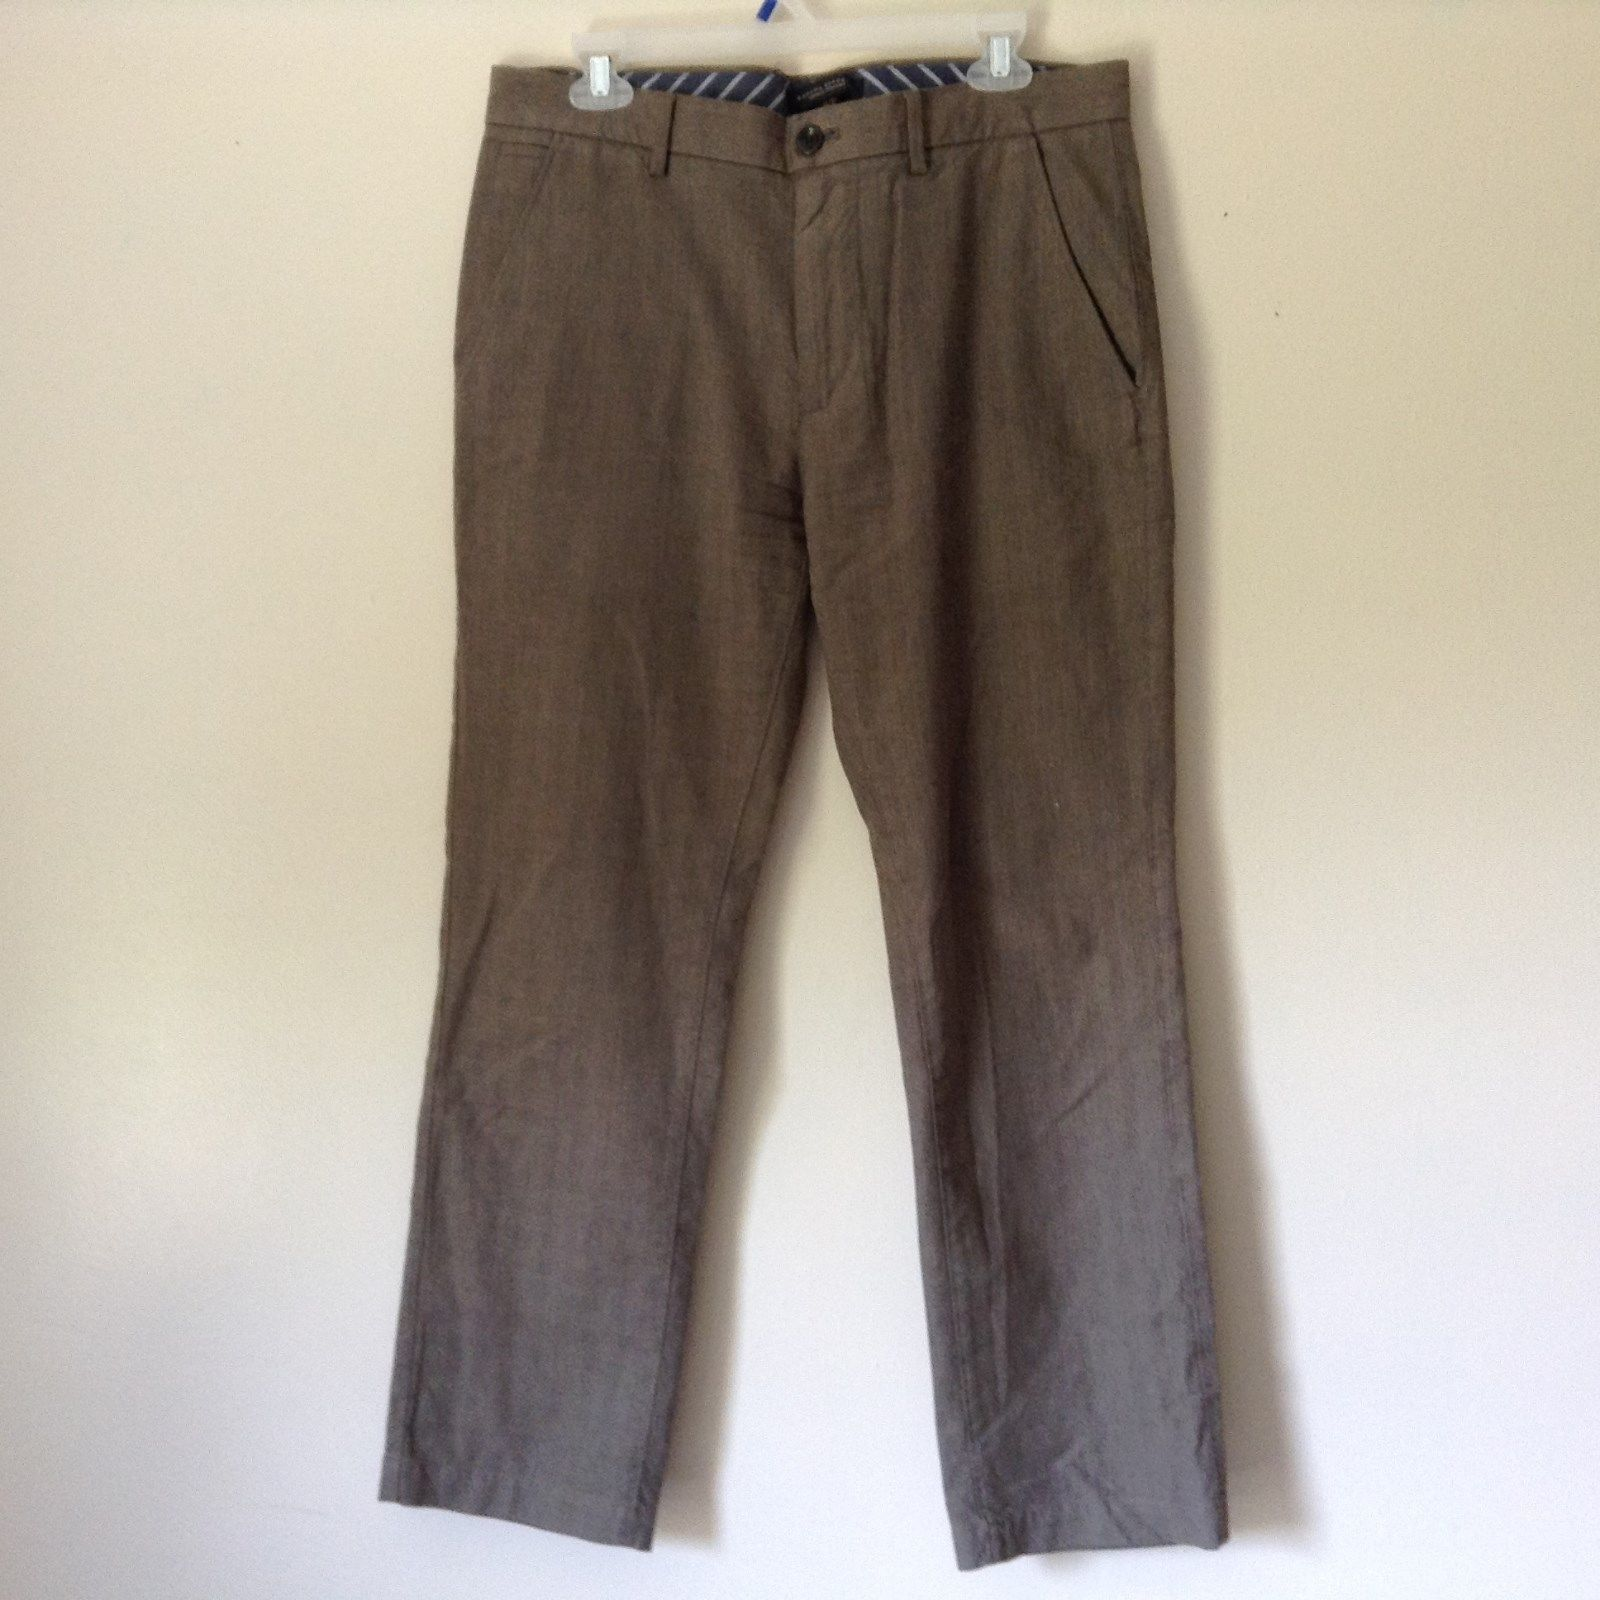 Banana Republic Dress Pants Vintage Straight 100 Percent Cotton Size 32 by 30